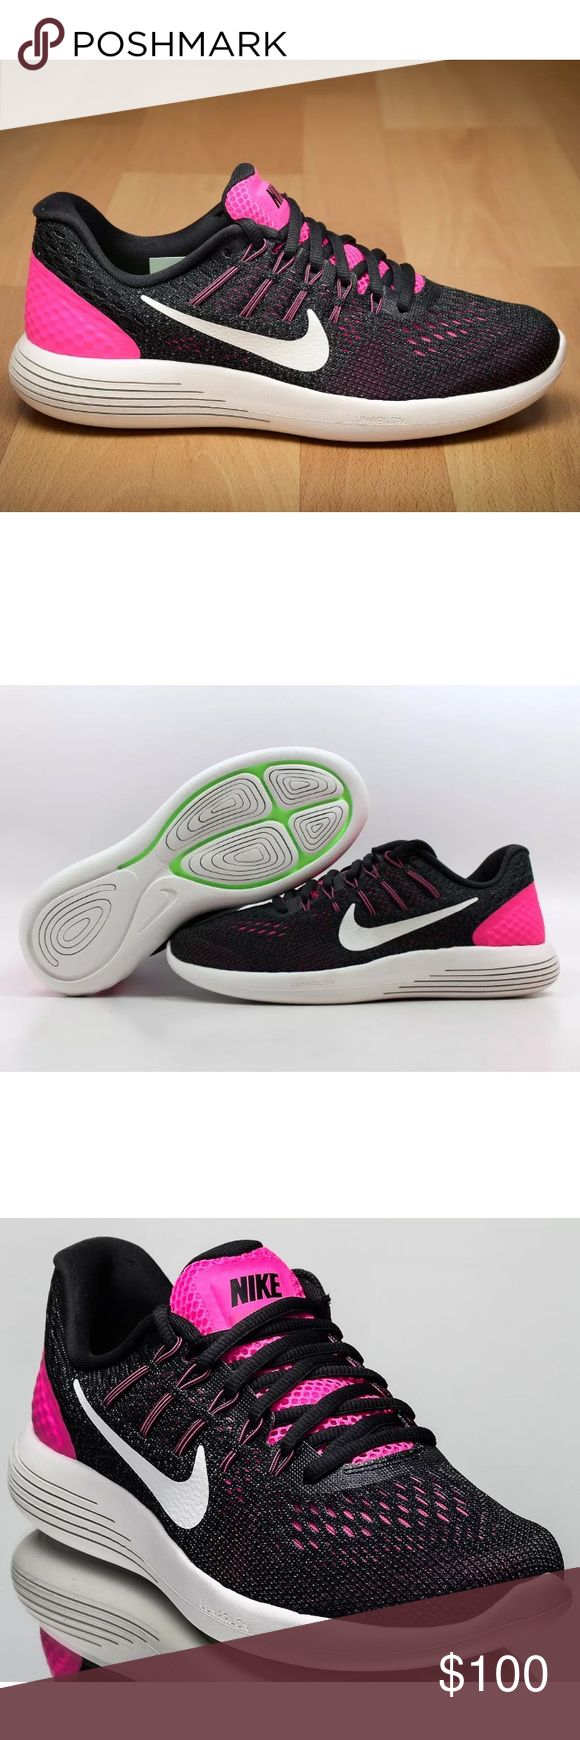 Women's Nike Lunarglide Black & Pink Sz 9 Women's Nike Lunarglide Black & Pink Sz 9. NIB. Never Worn. #843726 601. These shoes are so comfortable and perfect for any cross training activity. They are so adorable 🔥❗️ Nike Shoes Athletic Shoes